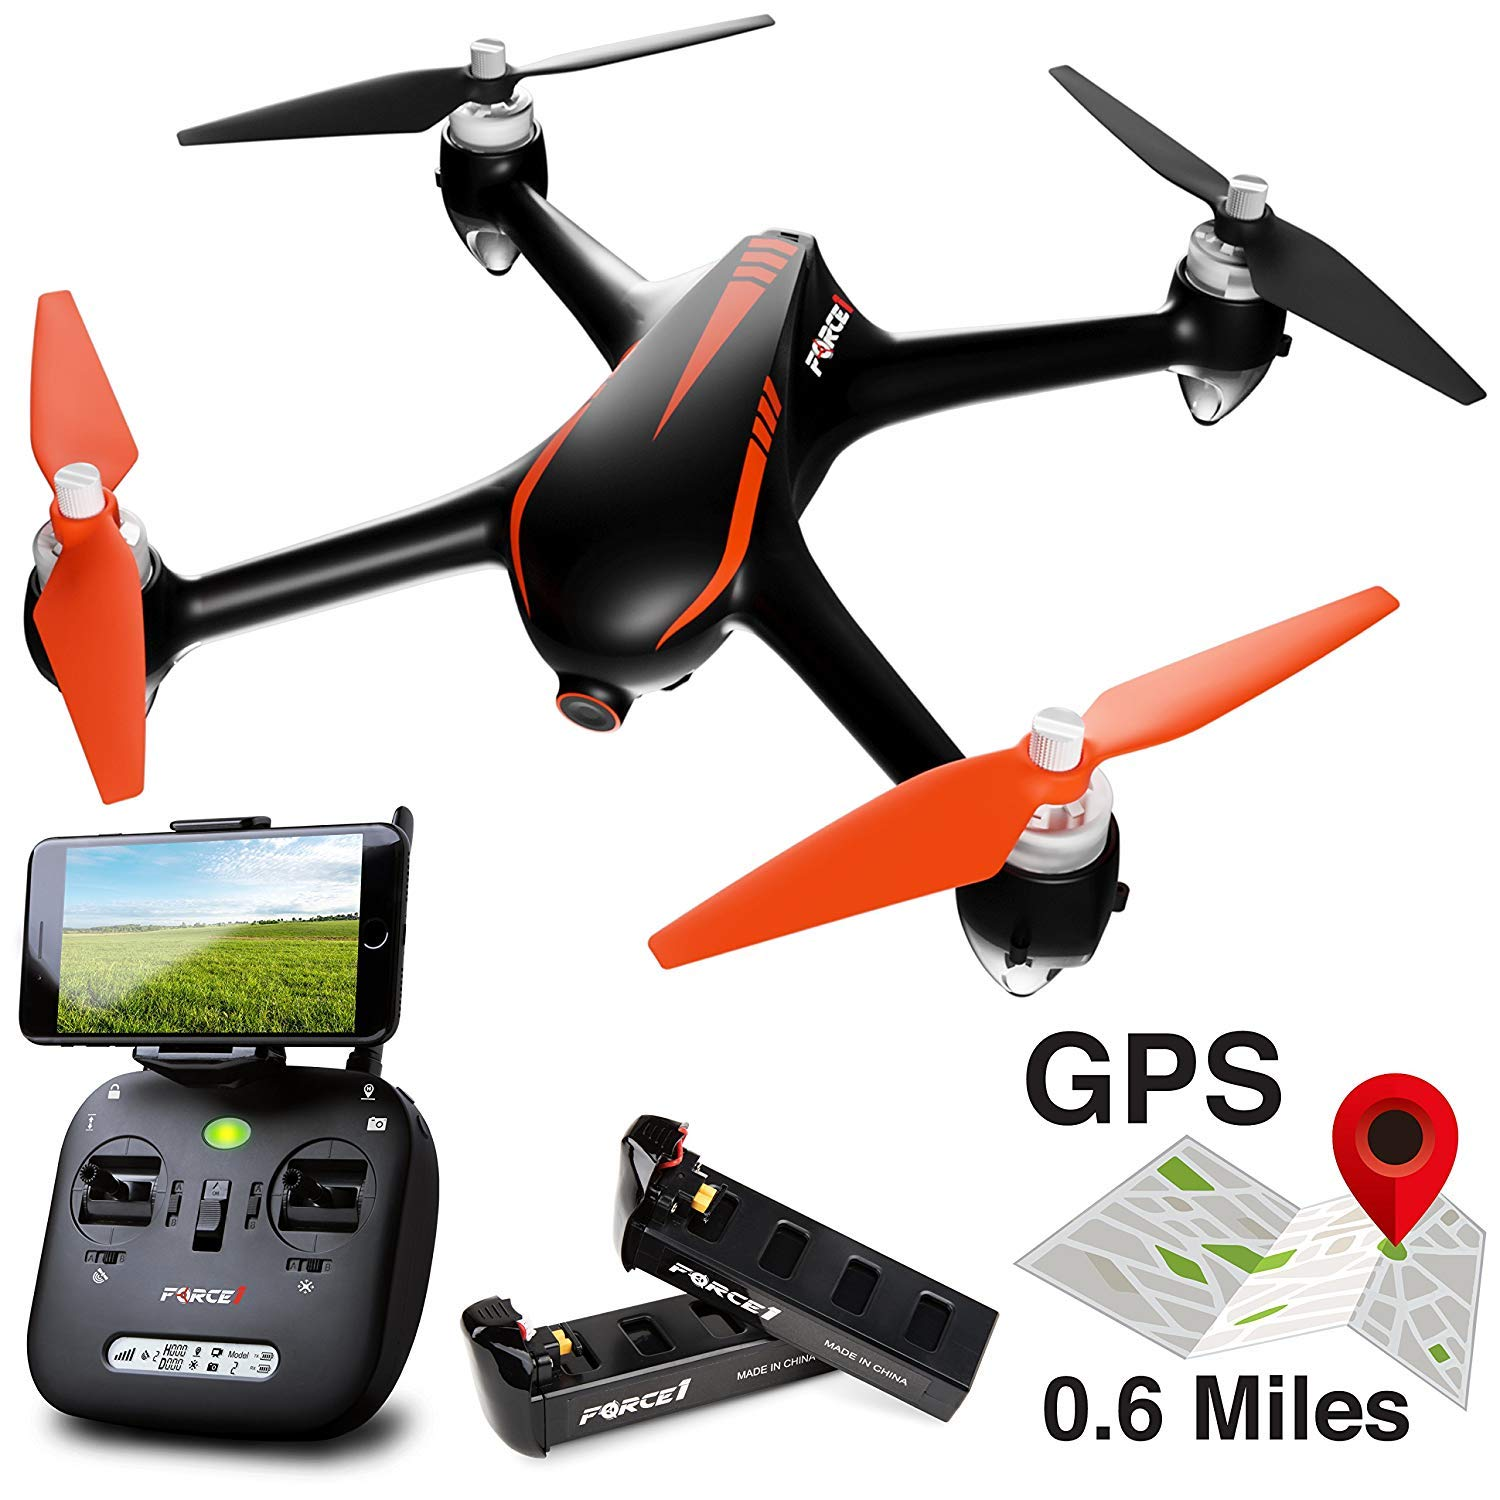 Force1 Drone with Camera Live Video and GPS Return Home Brushless Motors HD Drone 1080p Camera FPV MJX B2W Bugs 2 Quadcopter (Certified Refurbished)